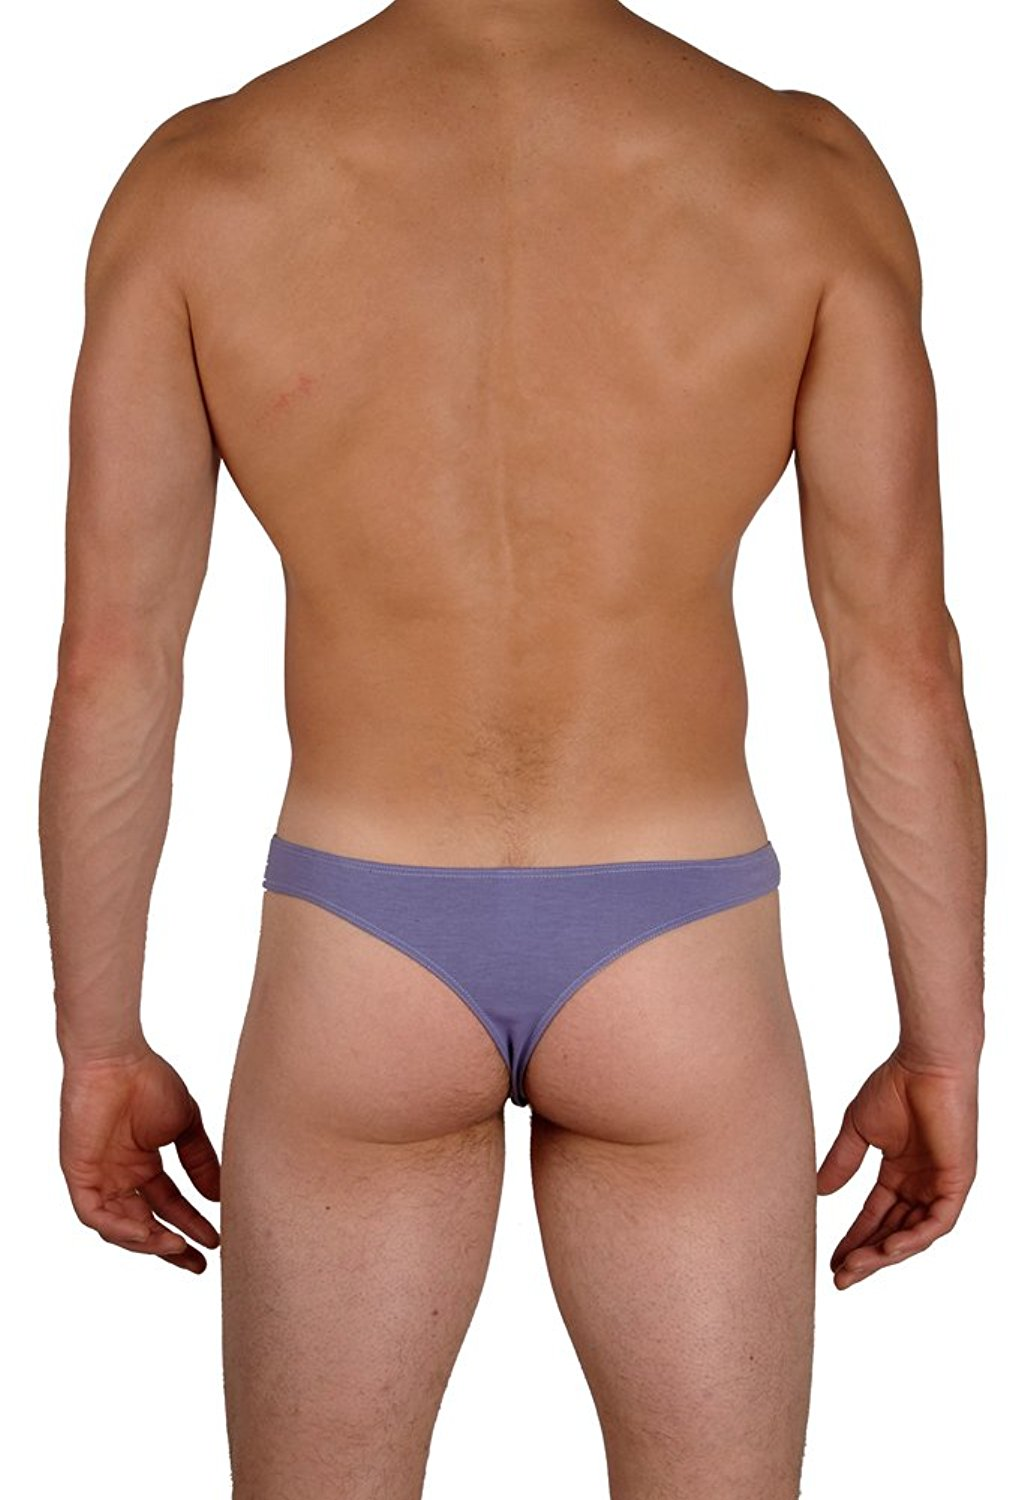 Men/'s 1 or 3 Pack Thong Underwear by Gary Majdell Sport